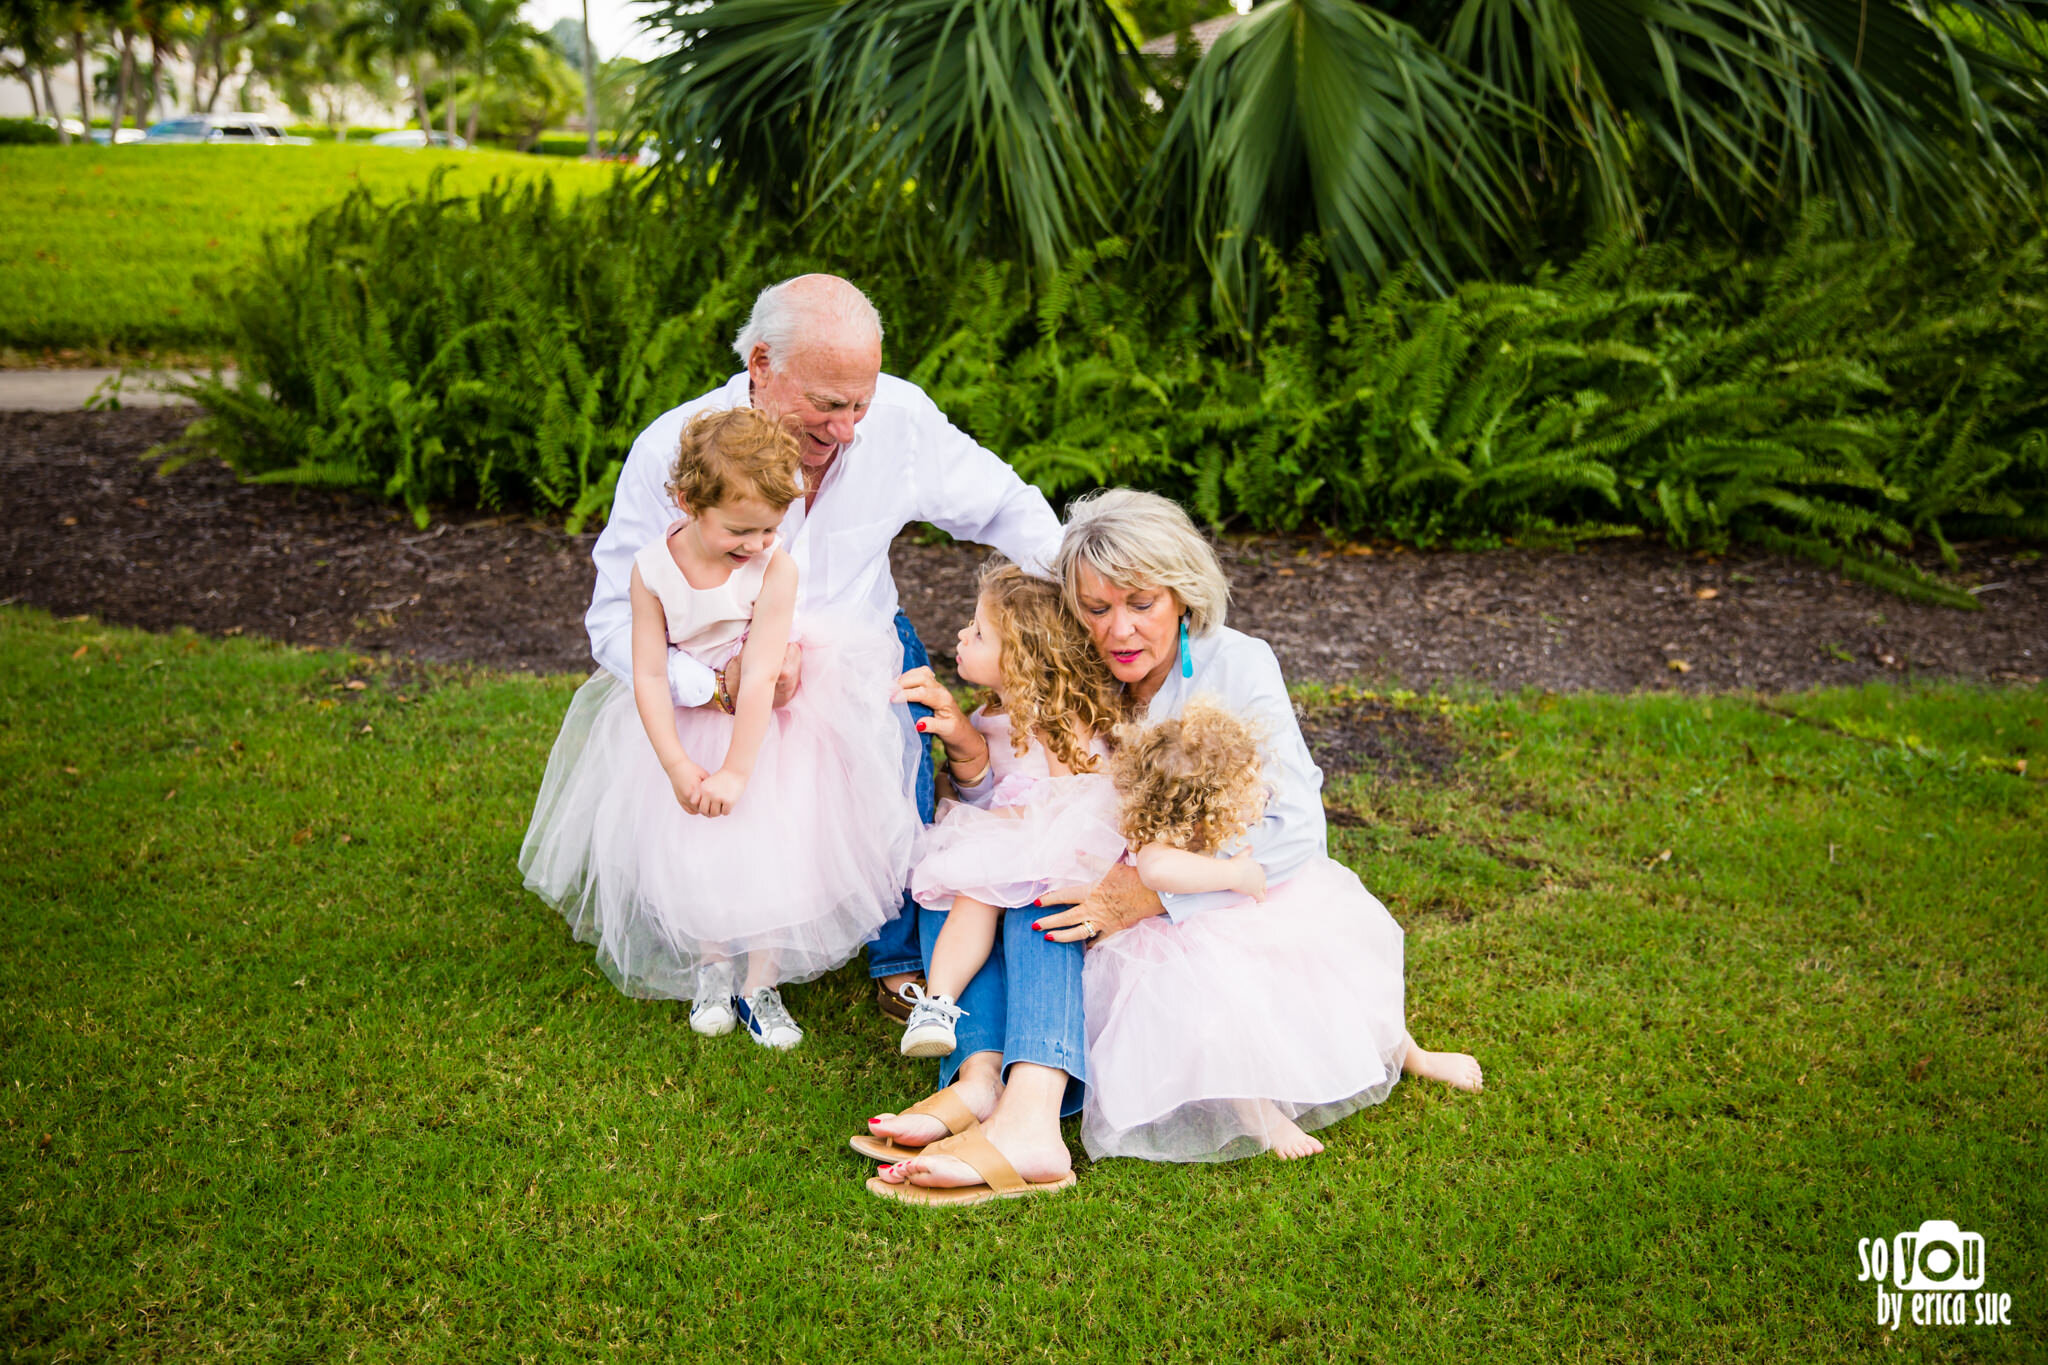 so-you-by-erica-sue-south-florida-extended-family-lifestyle-photo-session-2178.JPG